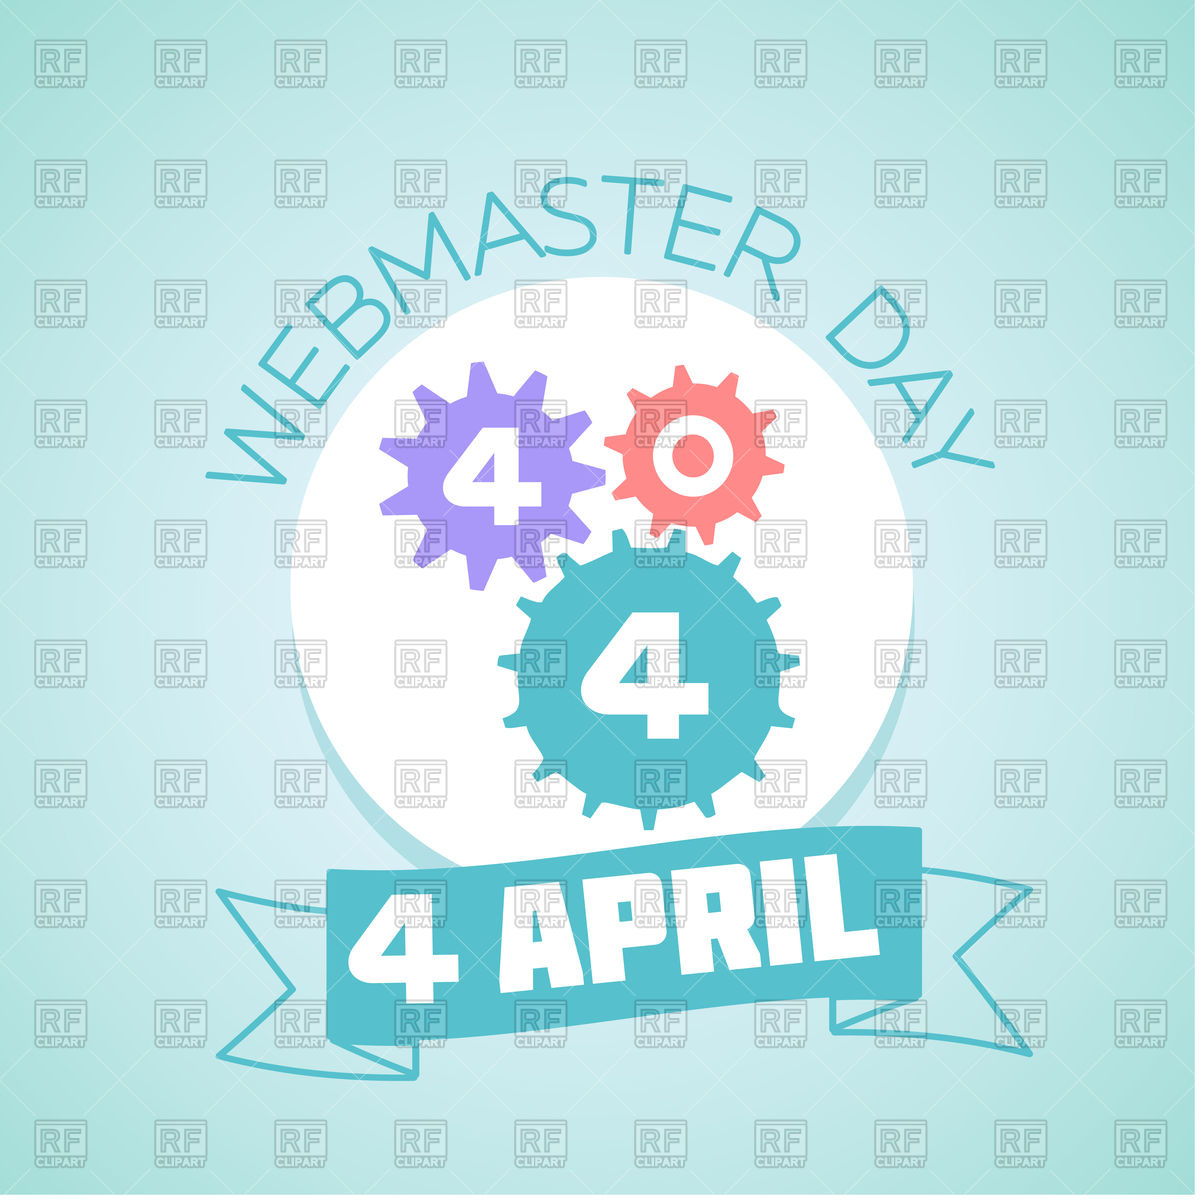 Calendar clipart april 4th png free download Calendar for each day on April 4 - Webmaster day Vector Image ... png free download